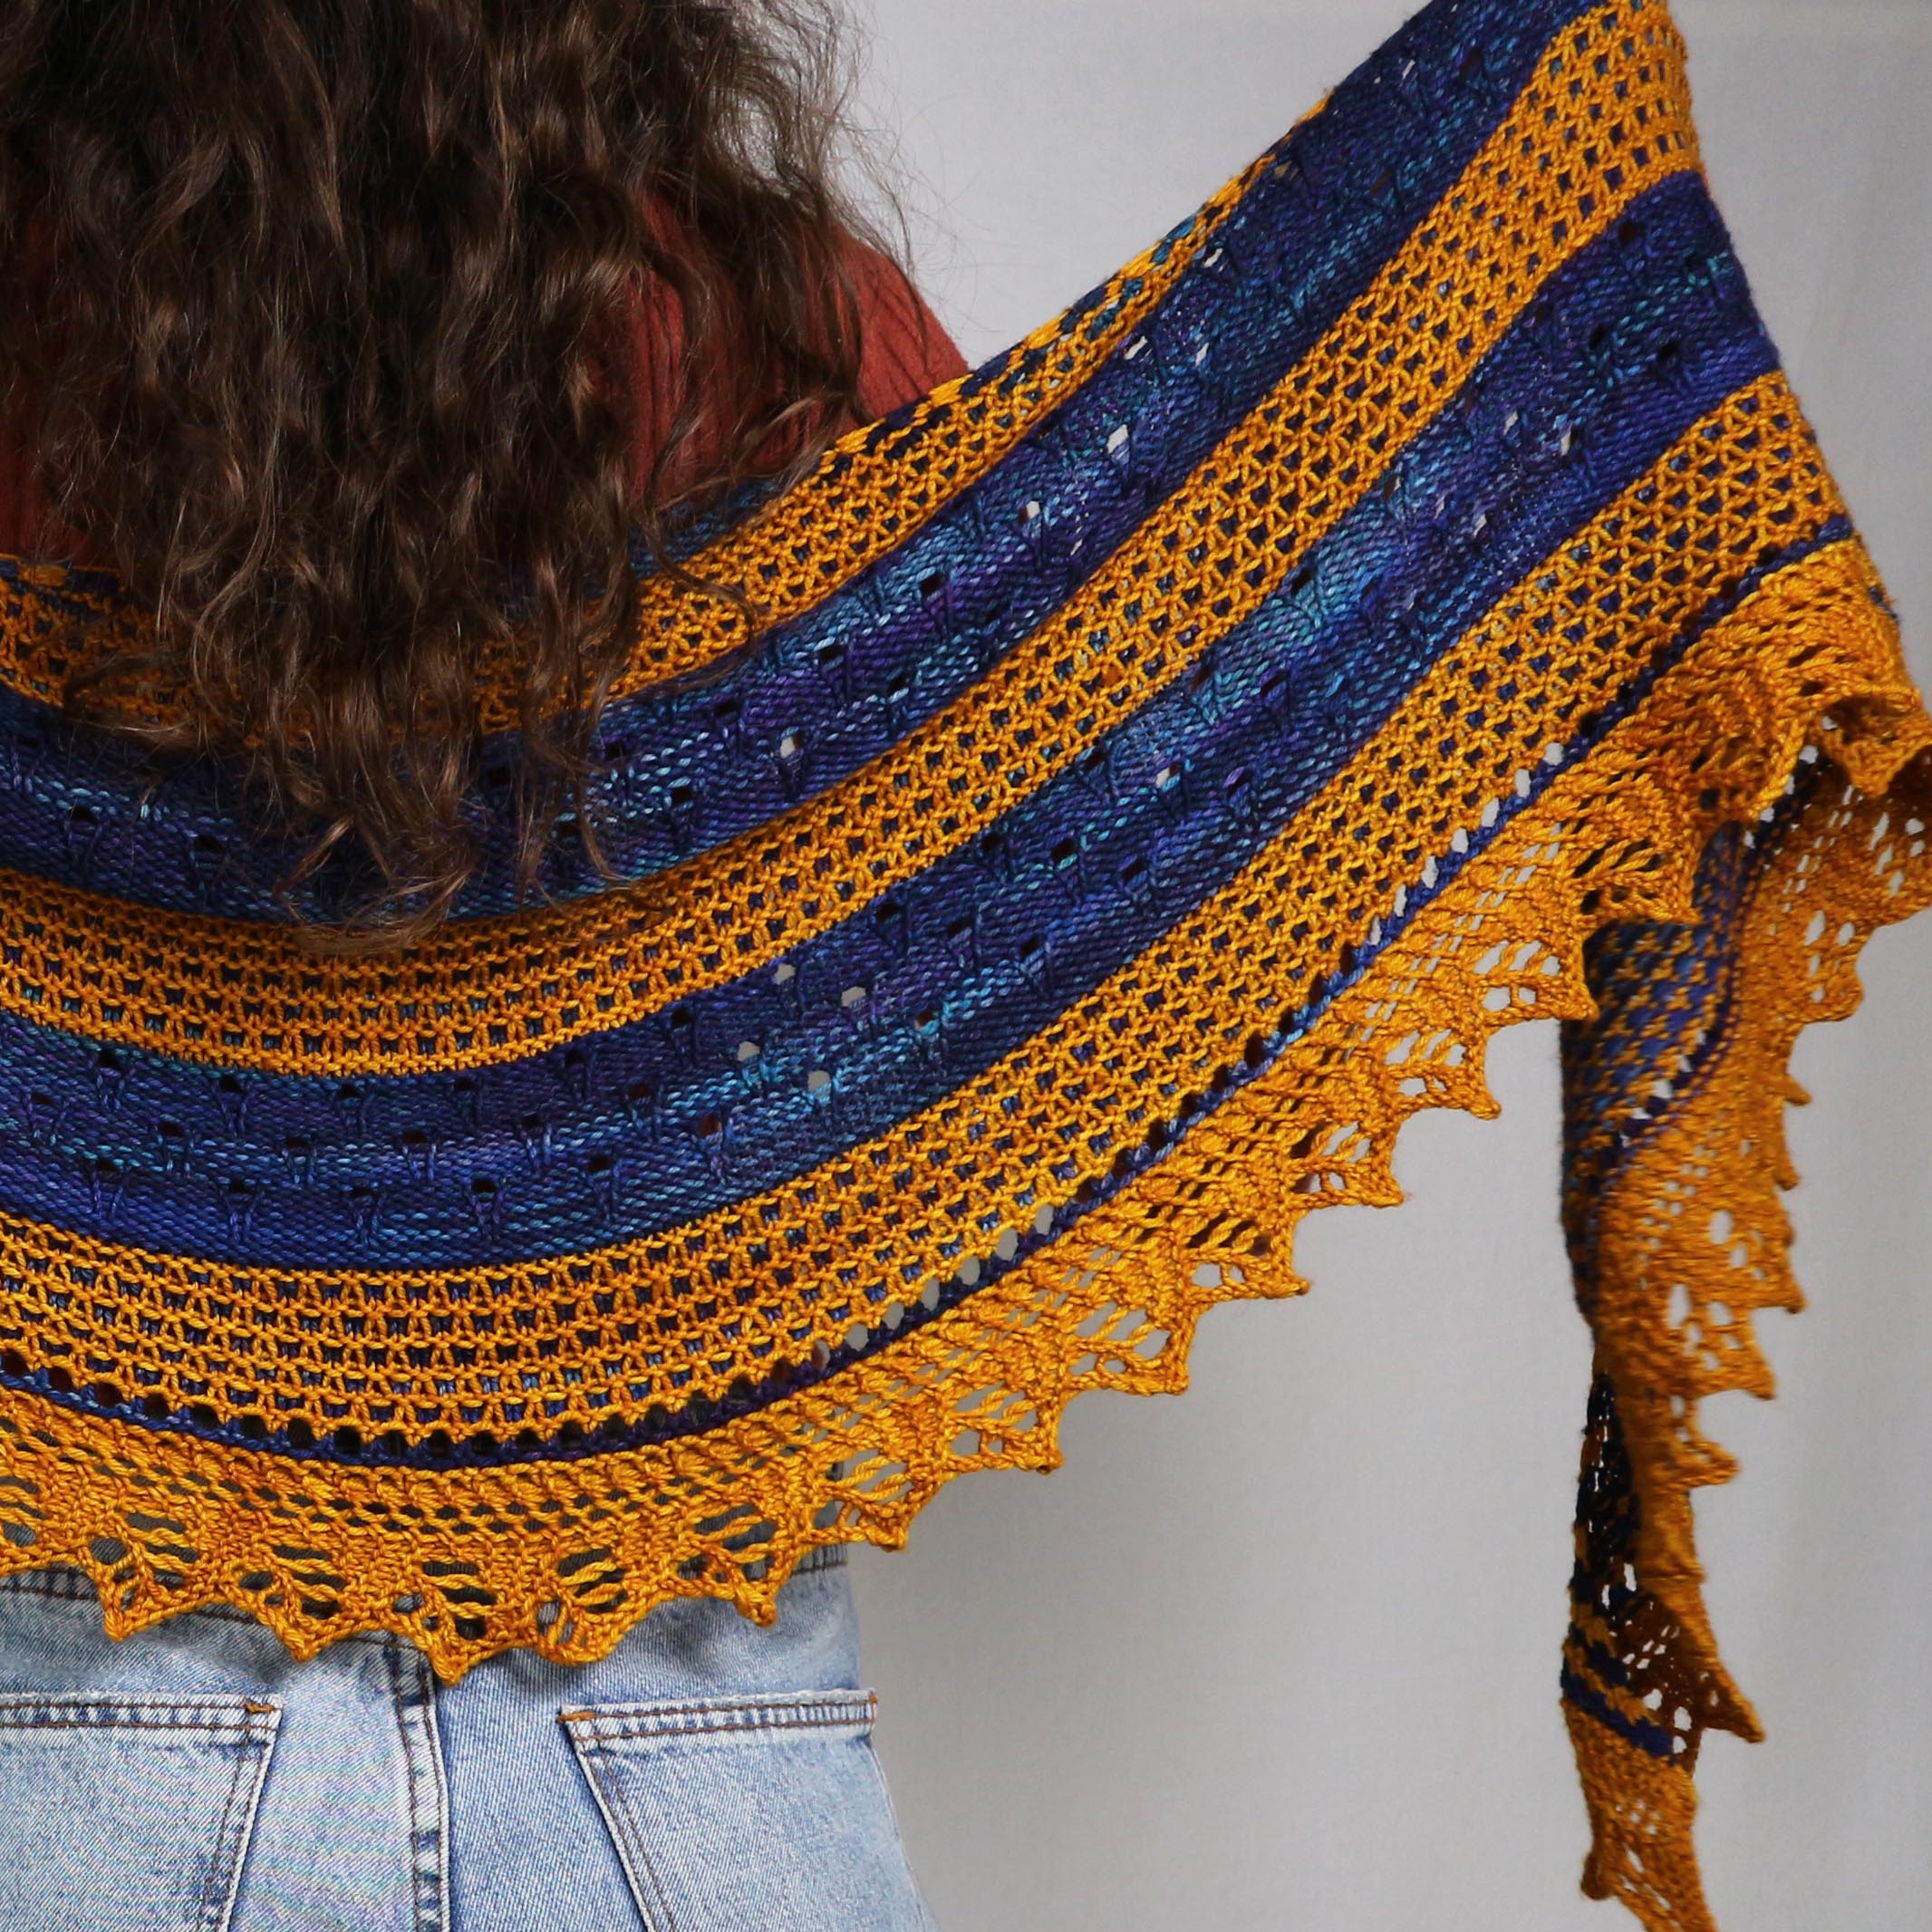 Earth Shawl by Cecilia Losada